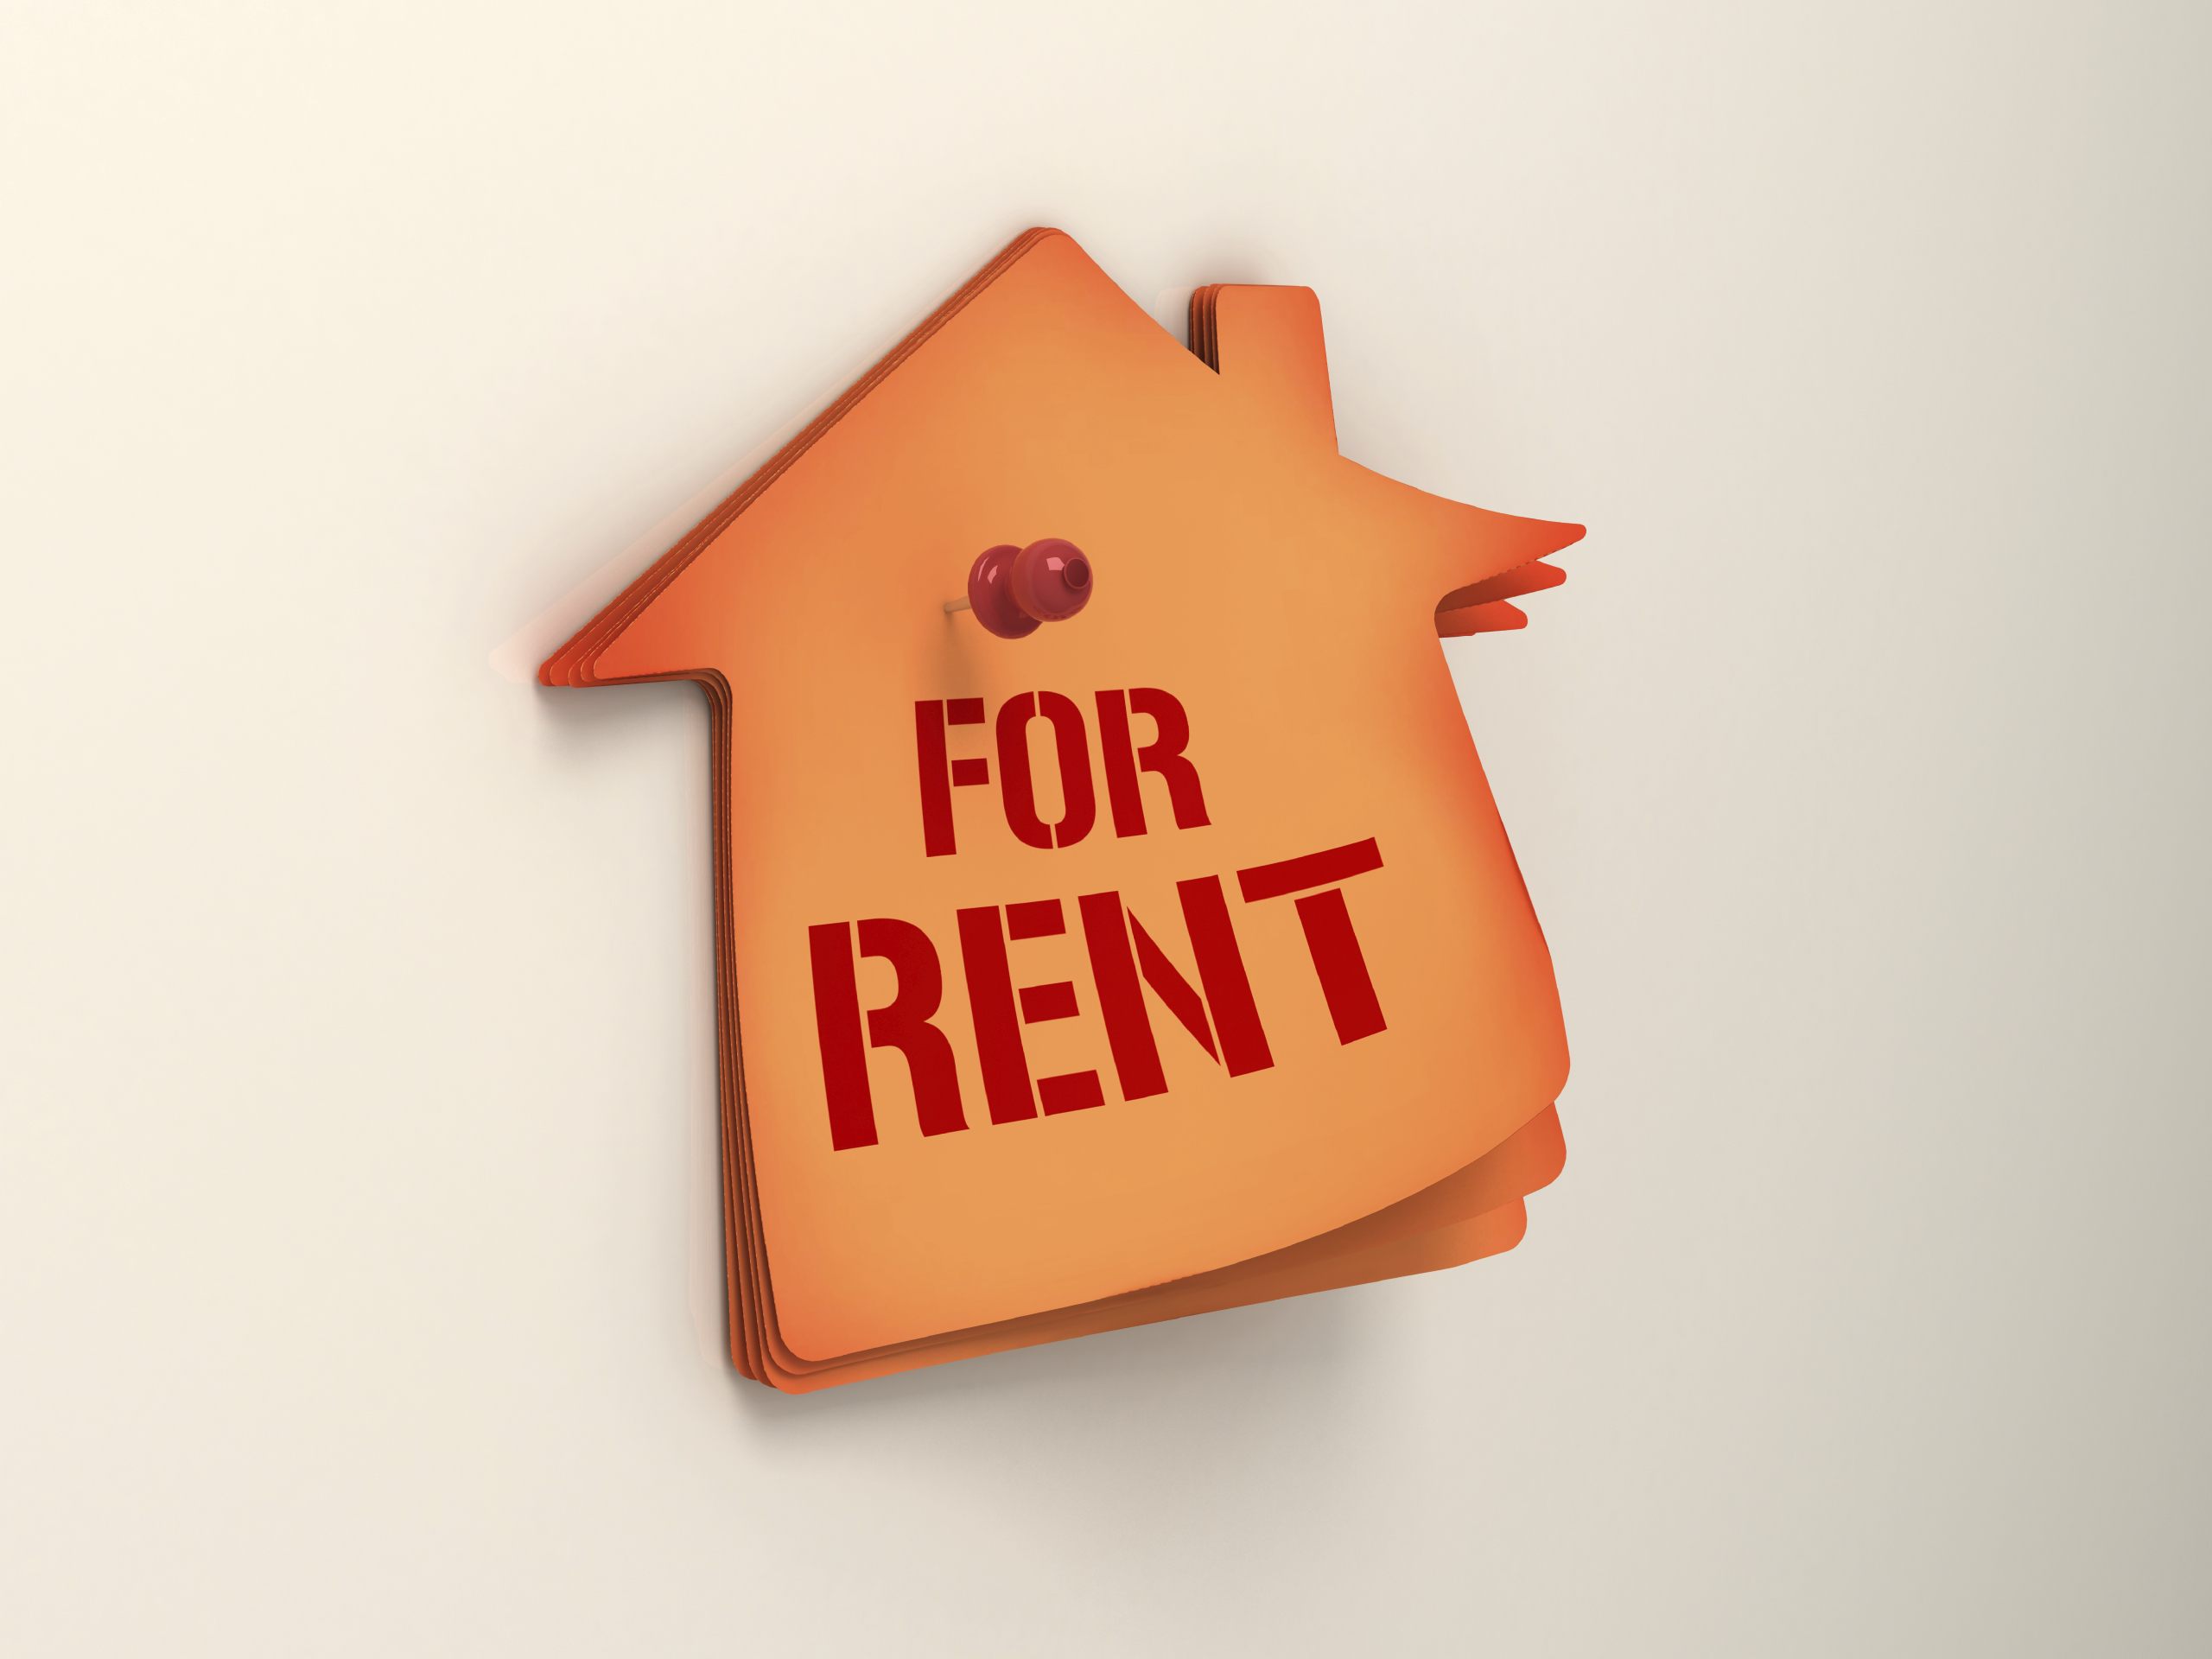 Getting cheaper to Rent In London